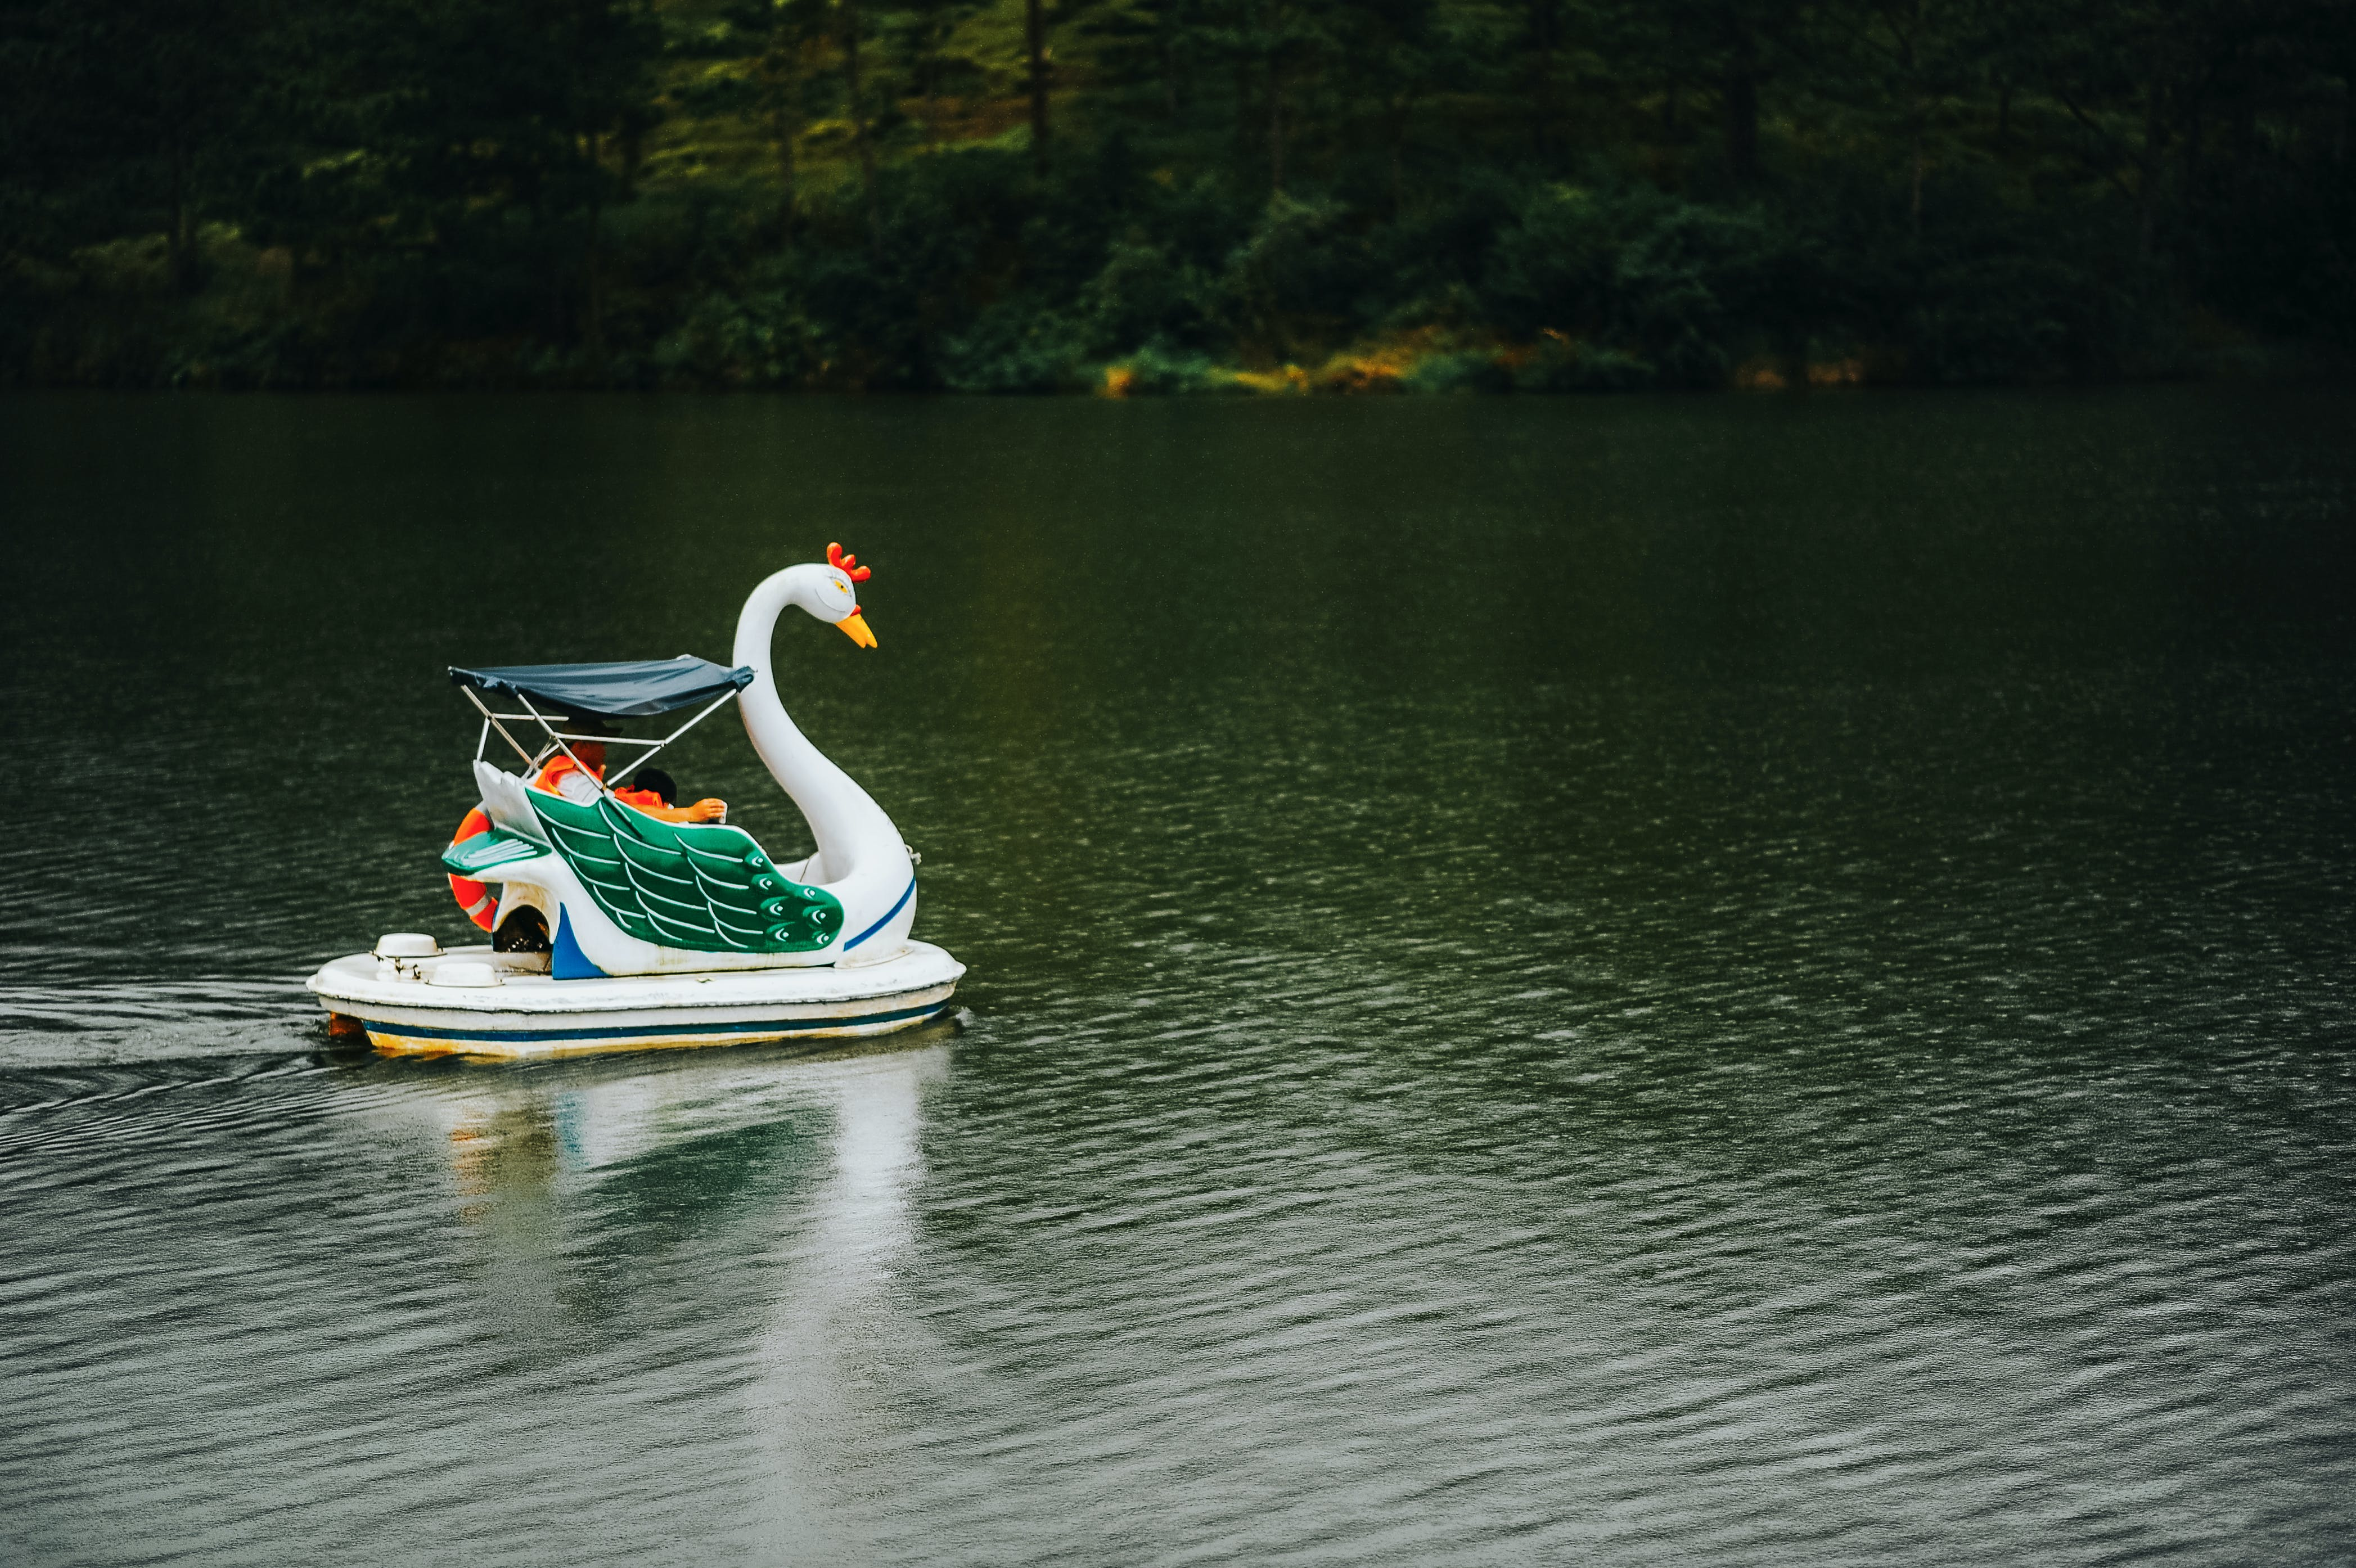 Swan Boat in Body of Water